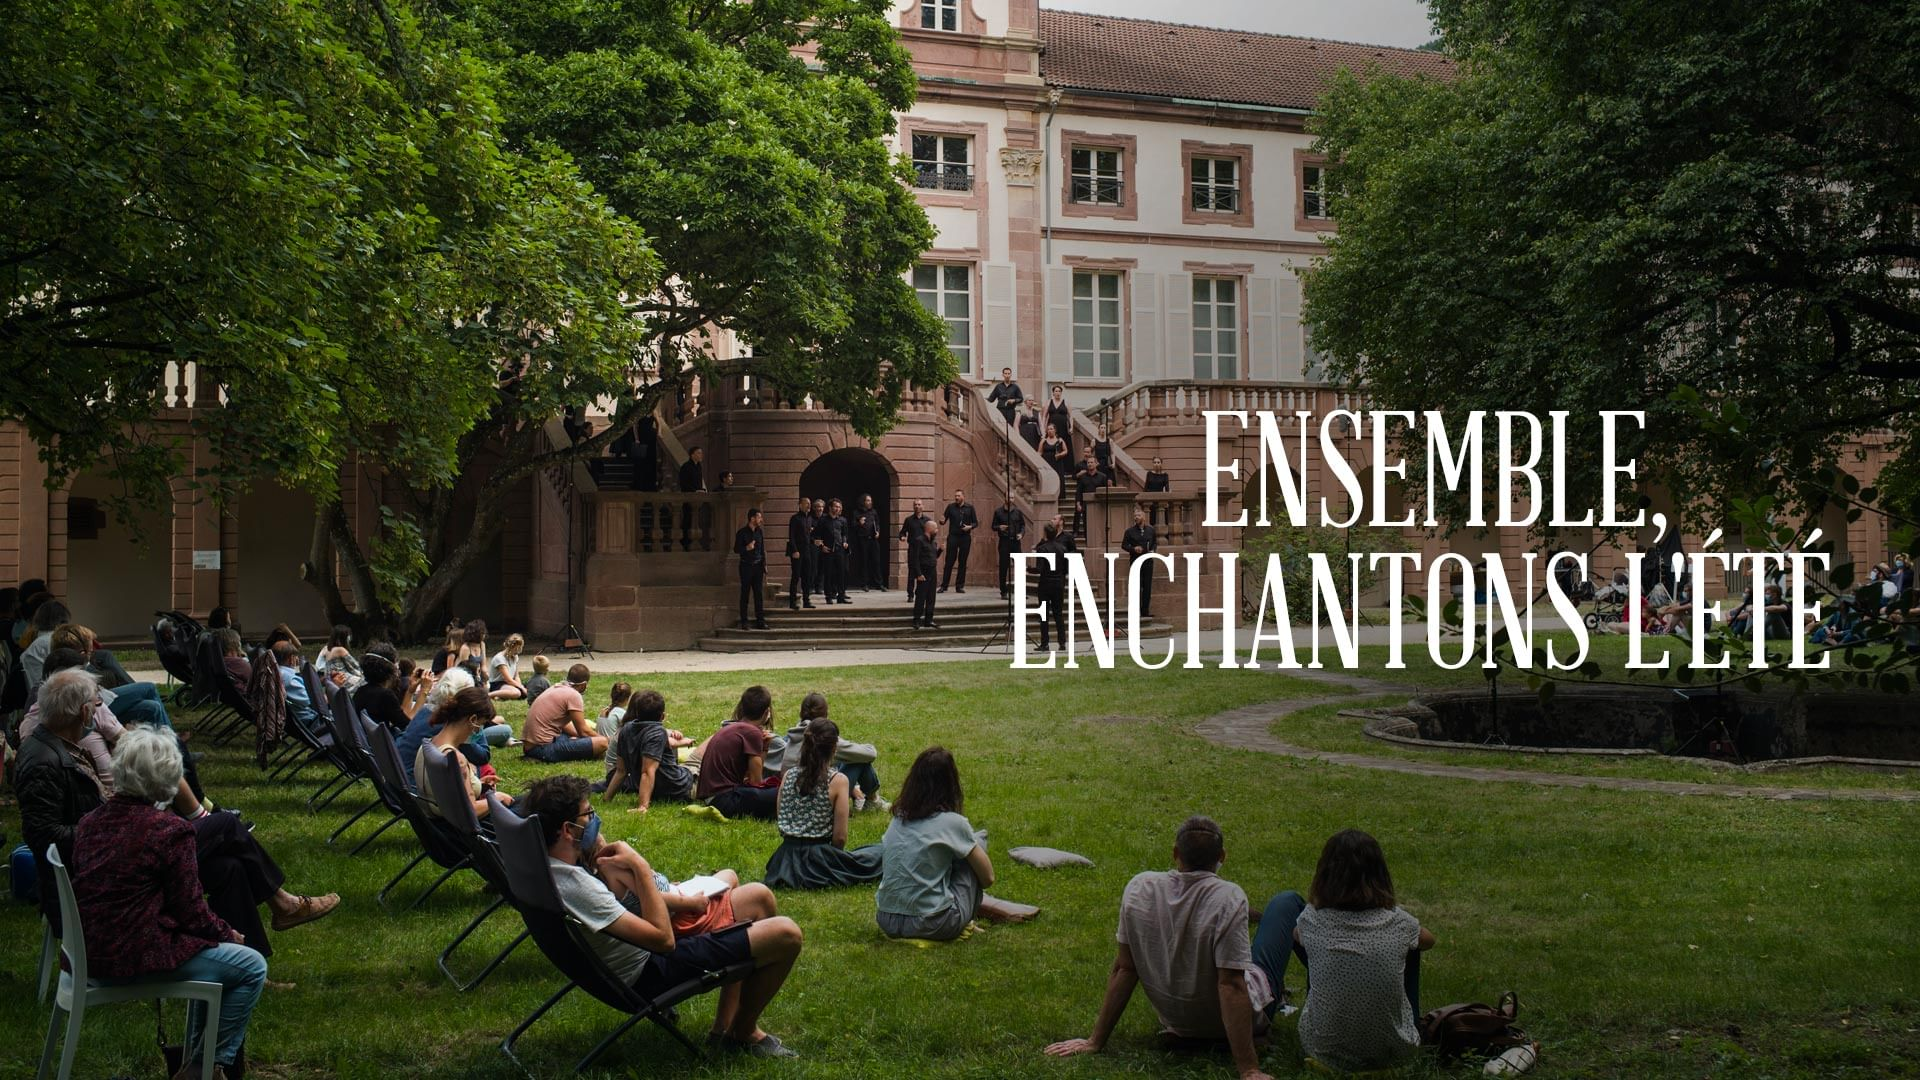 Ensemble, enchantons l'été